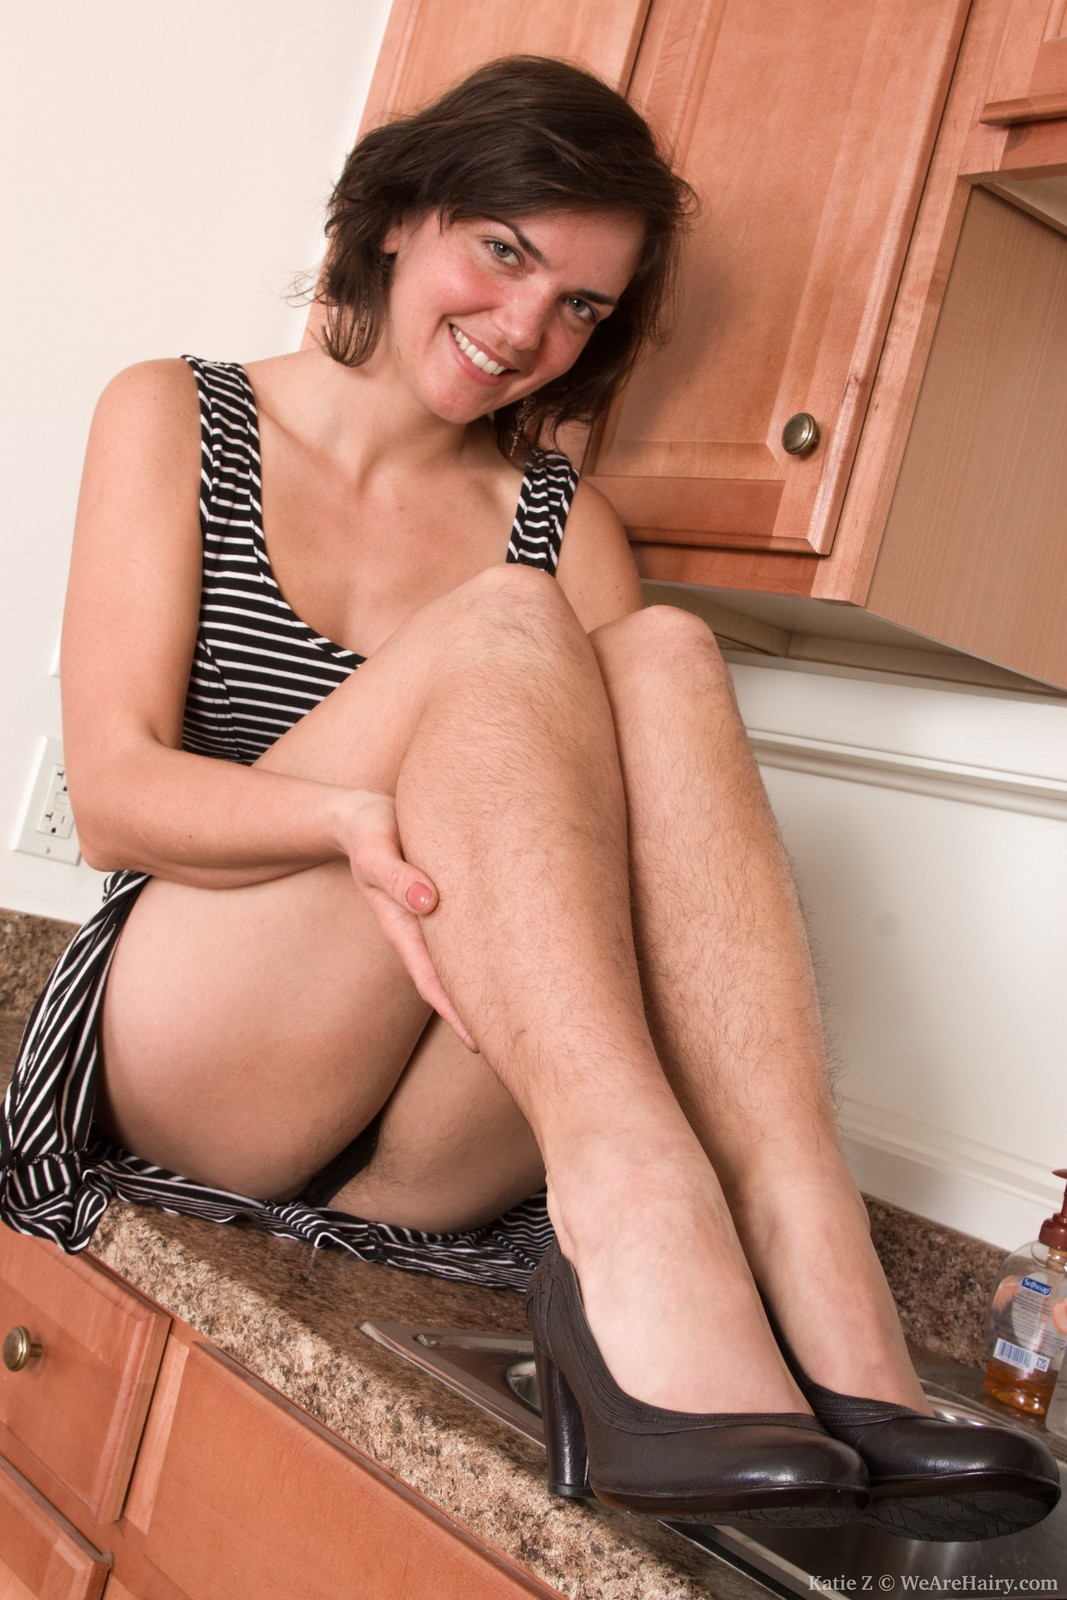 wpid-katie-z-strips-naked-in-the-kitchen-for-all4.jpg